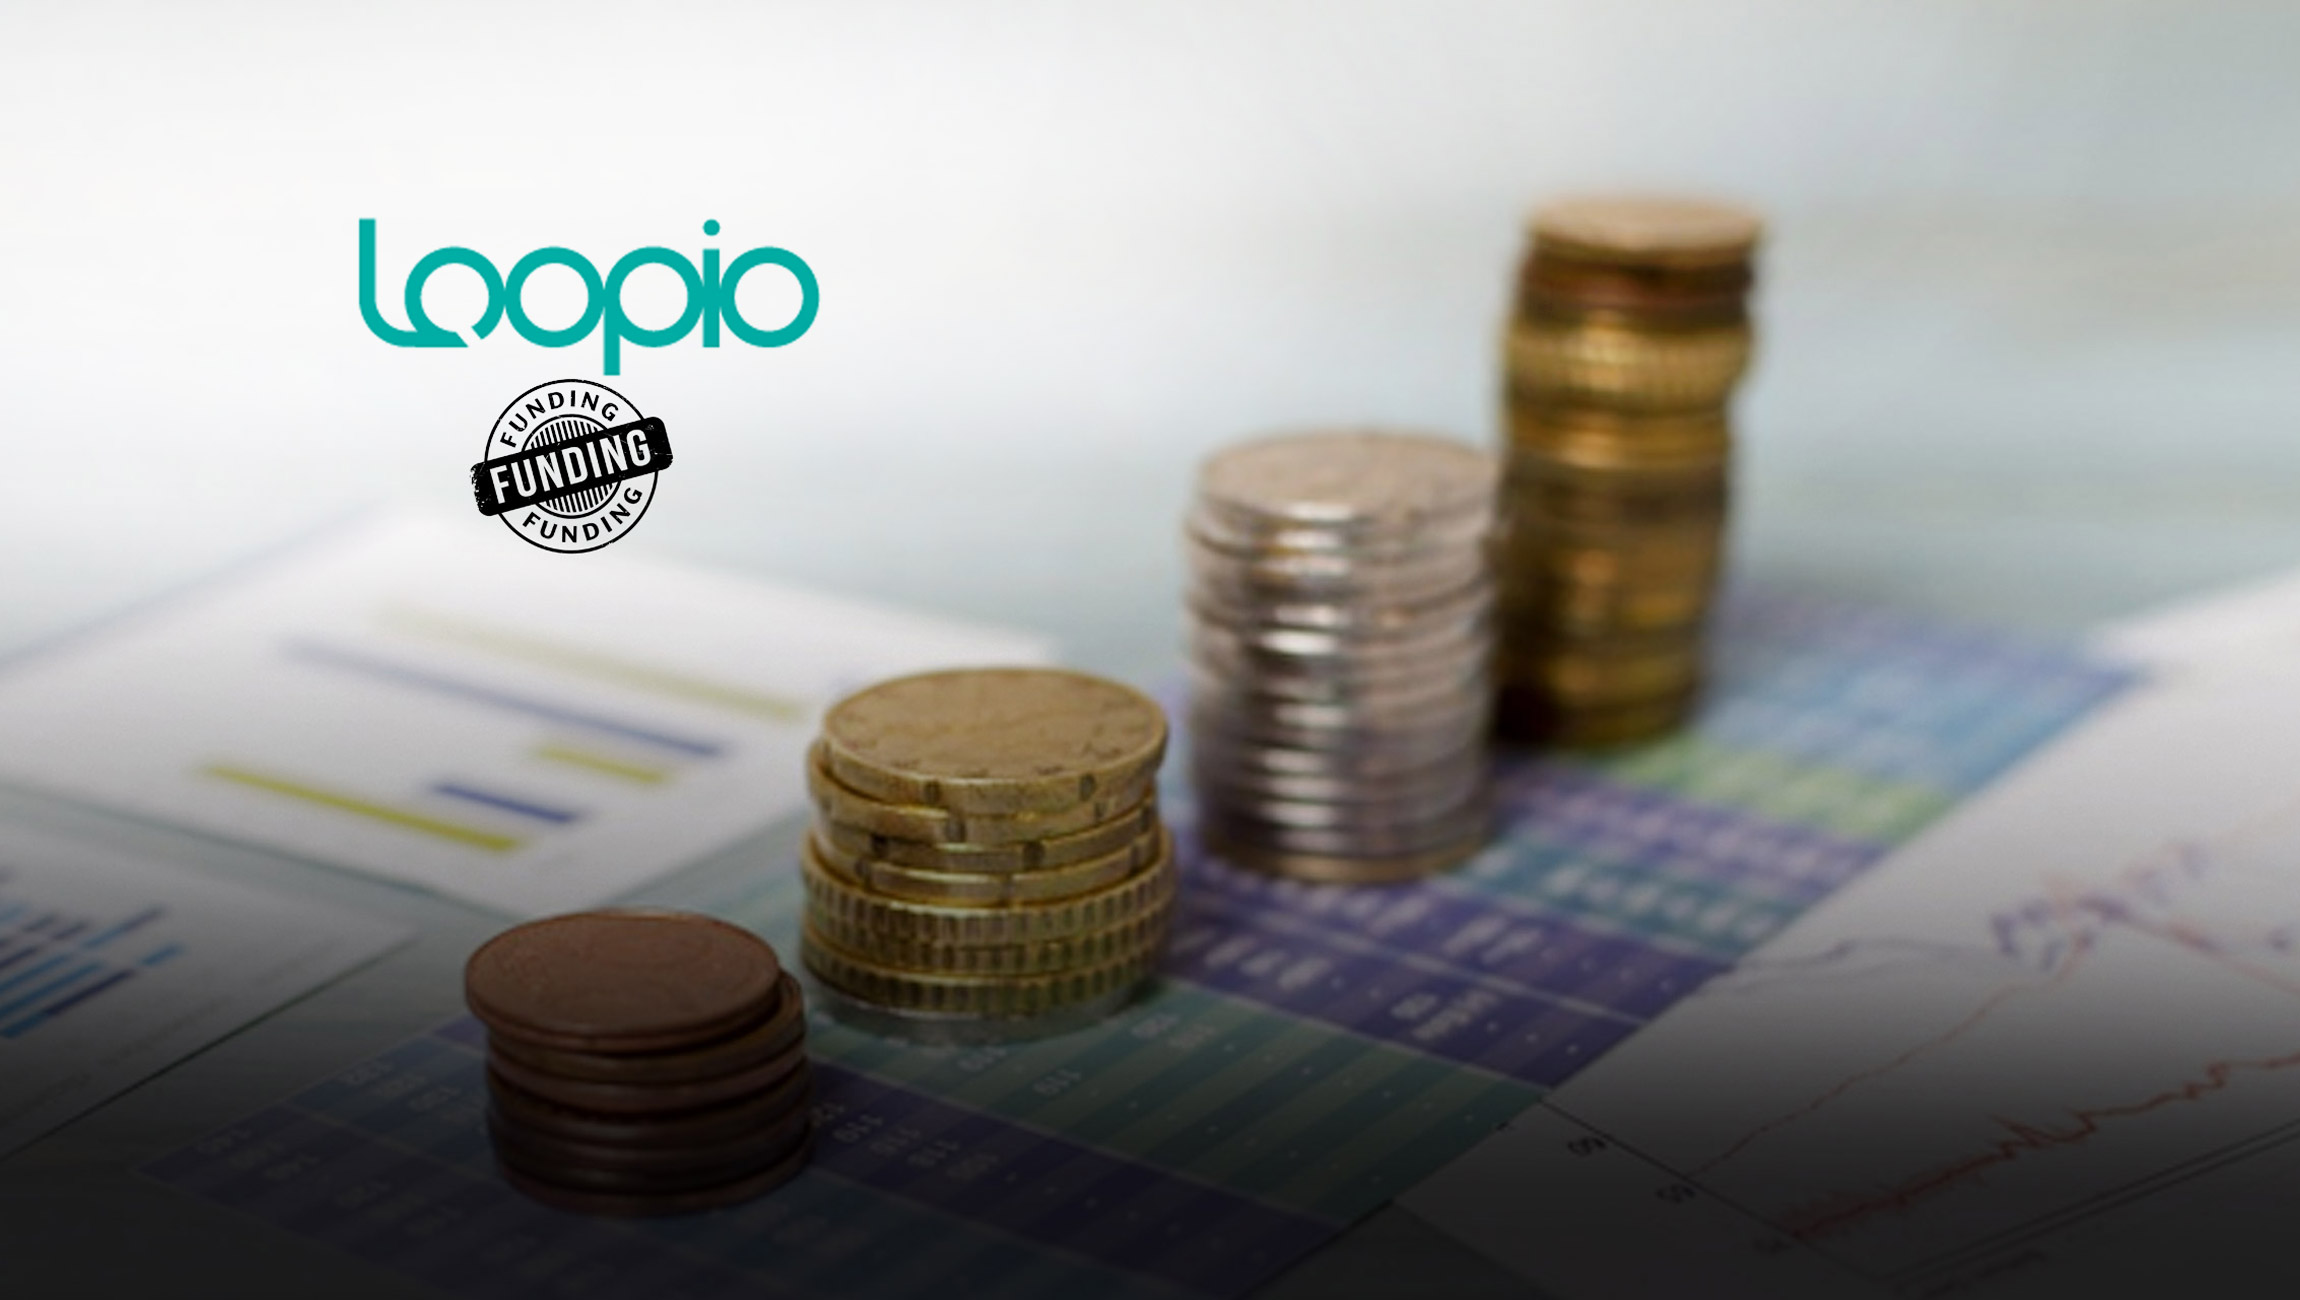 Loopio Announces $200M Investment From Sumeru Equity Partners and Affiliates to Take RFP Response Software to New Heights